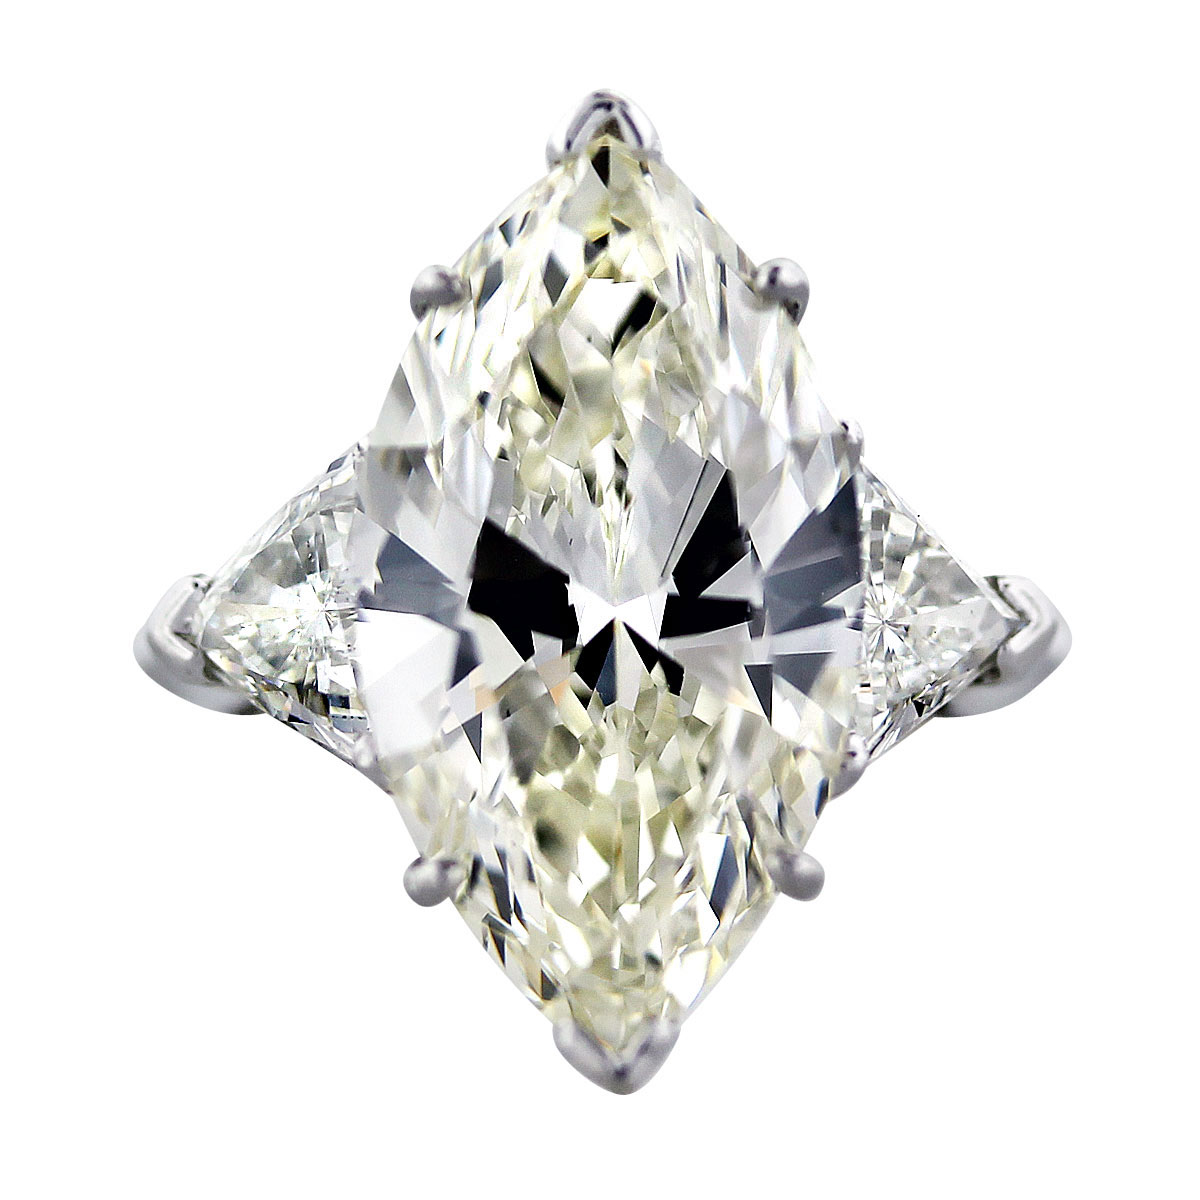 10 Carat Marquise Cut GIA Diamond Engagement Ring With